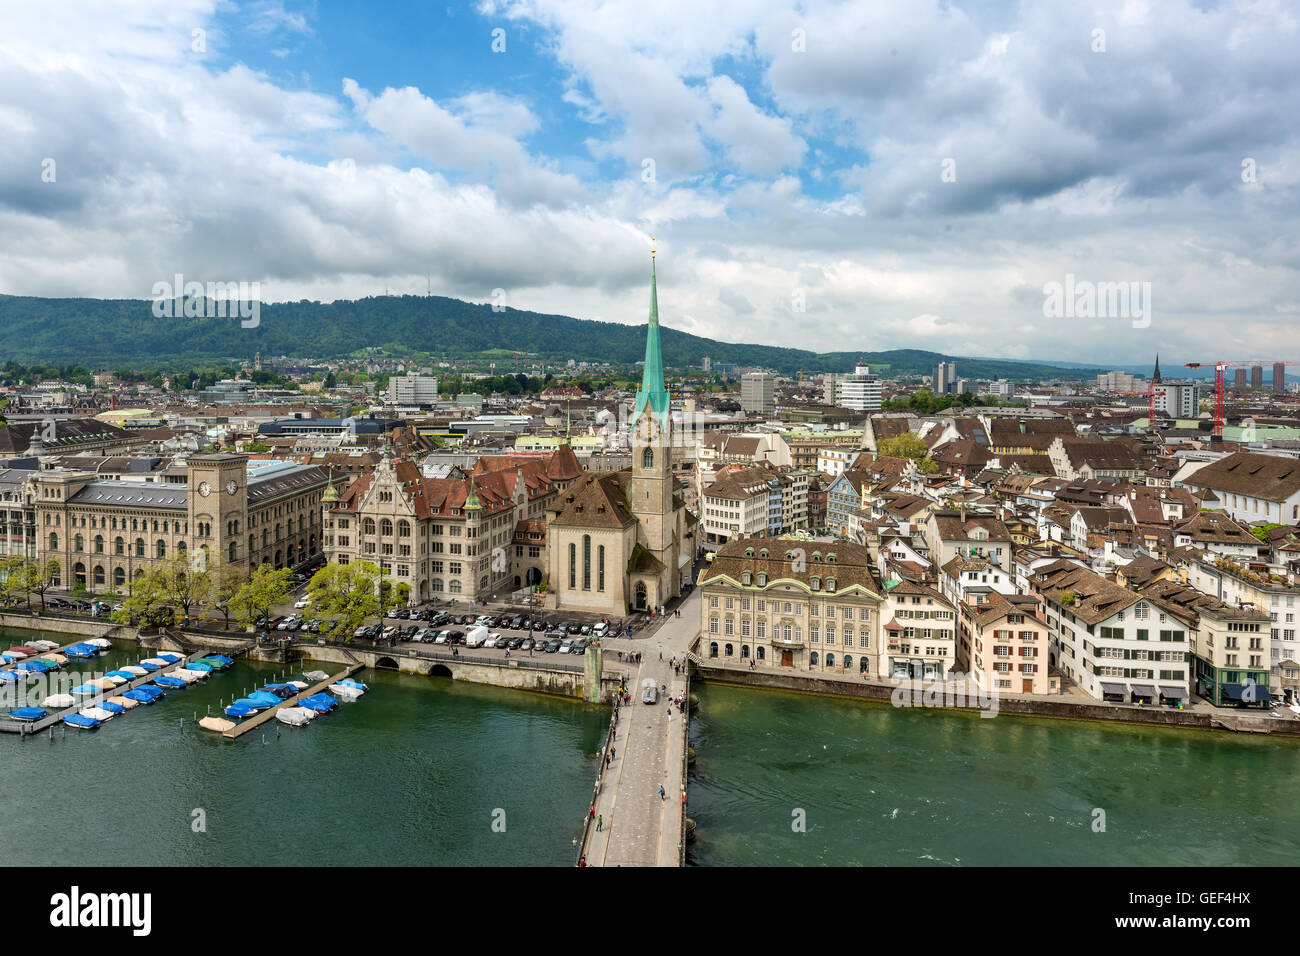 Aerial view of Zurich old town along Limmat river, Zurich, Switzerland. - Stock Image